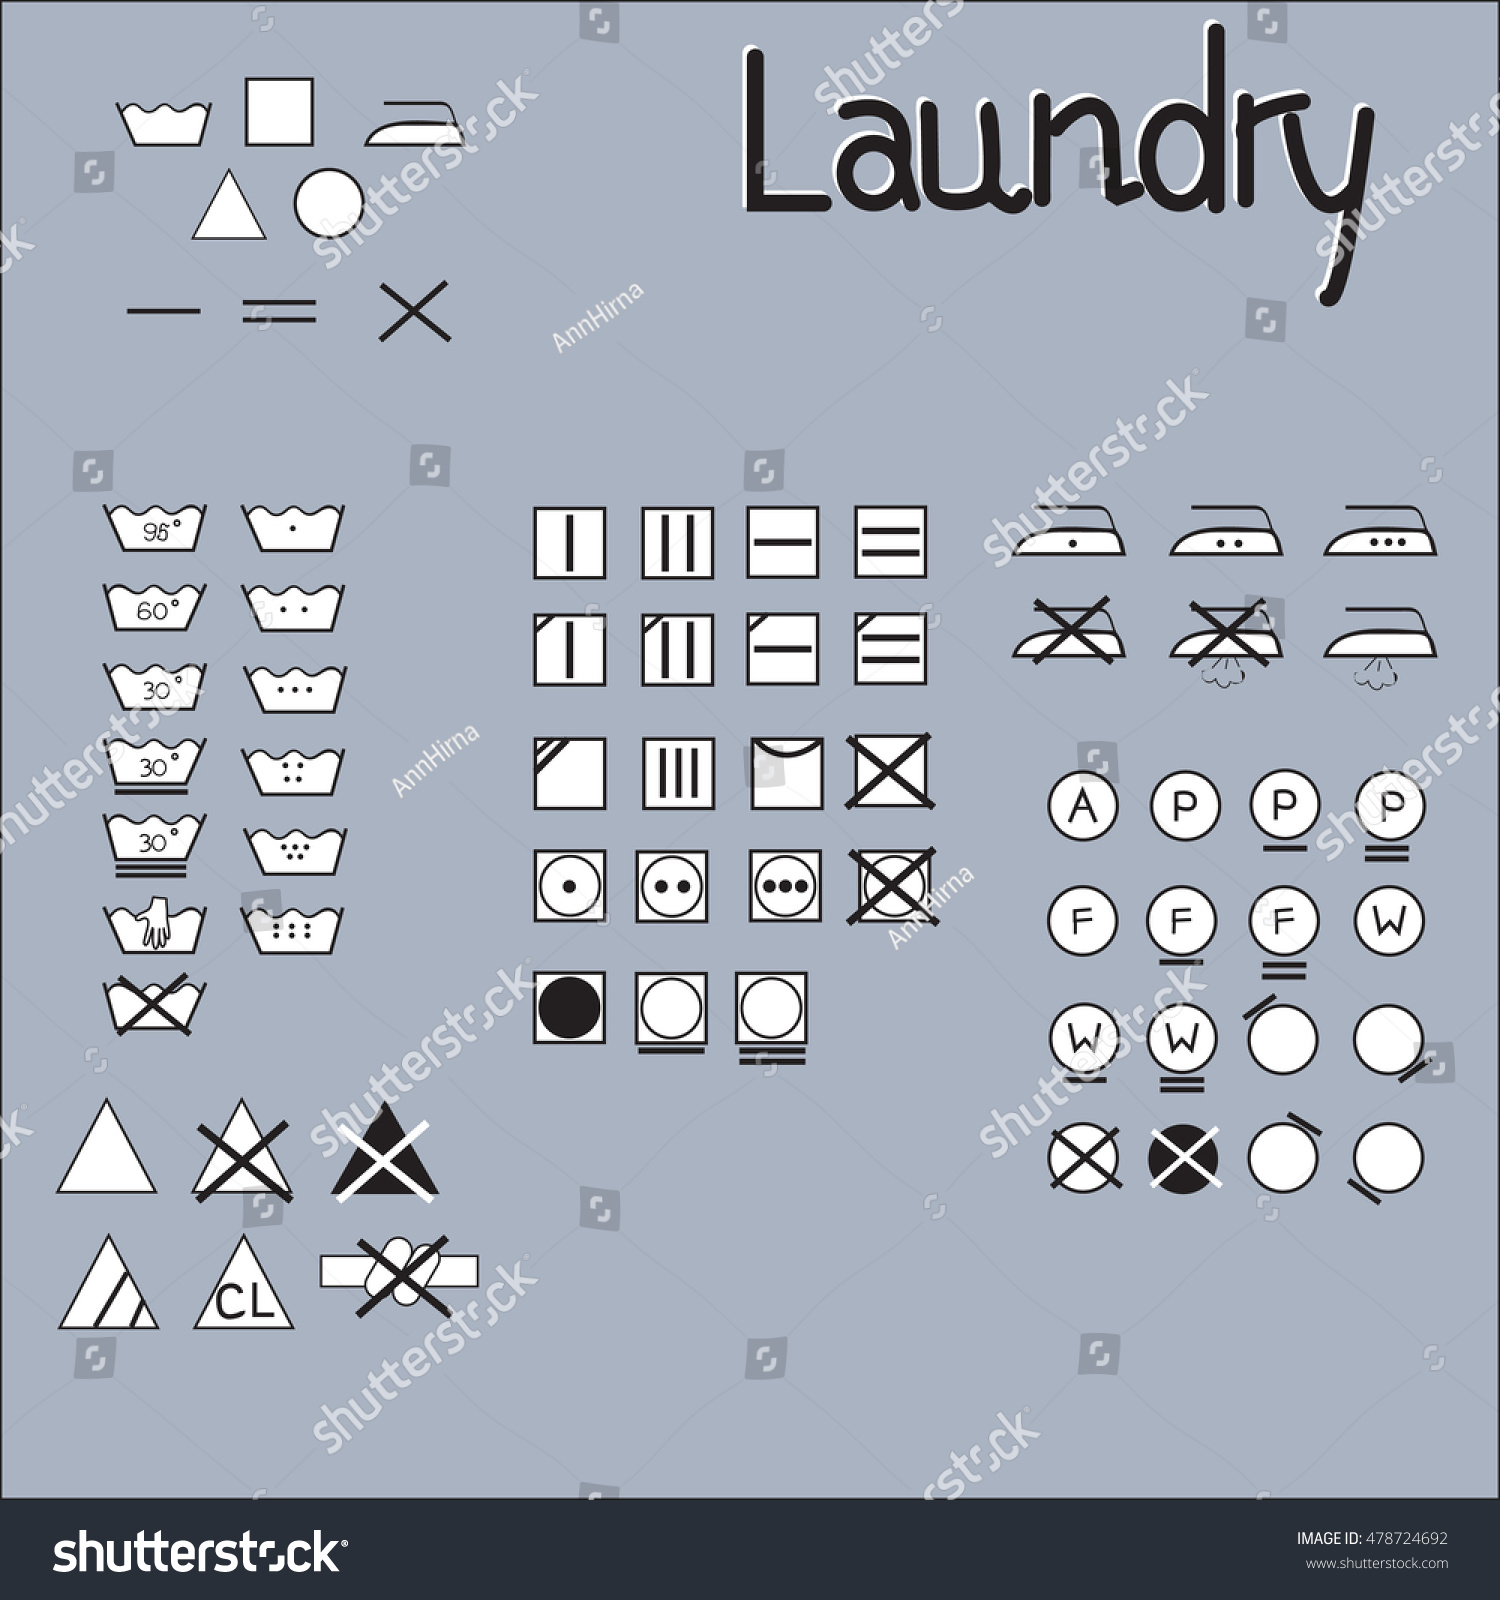 Laundry Symbols Line Design Washing Ironing Stock Photo Photo